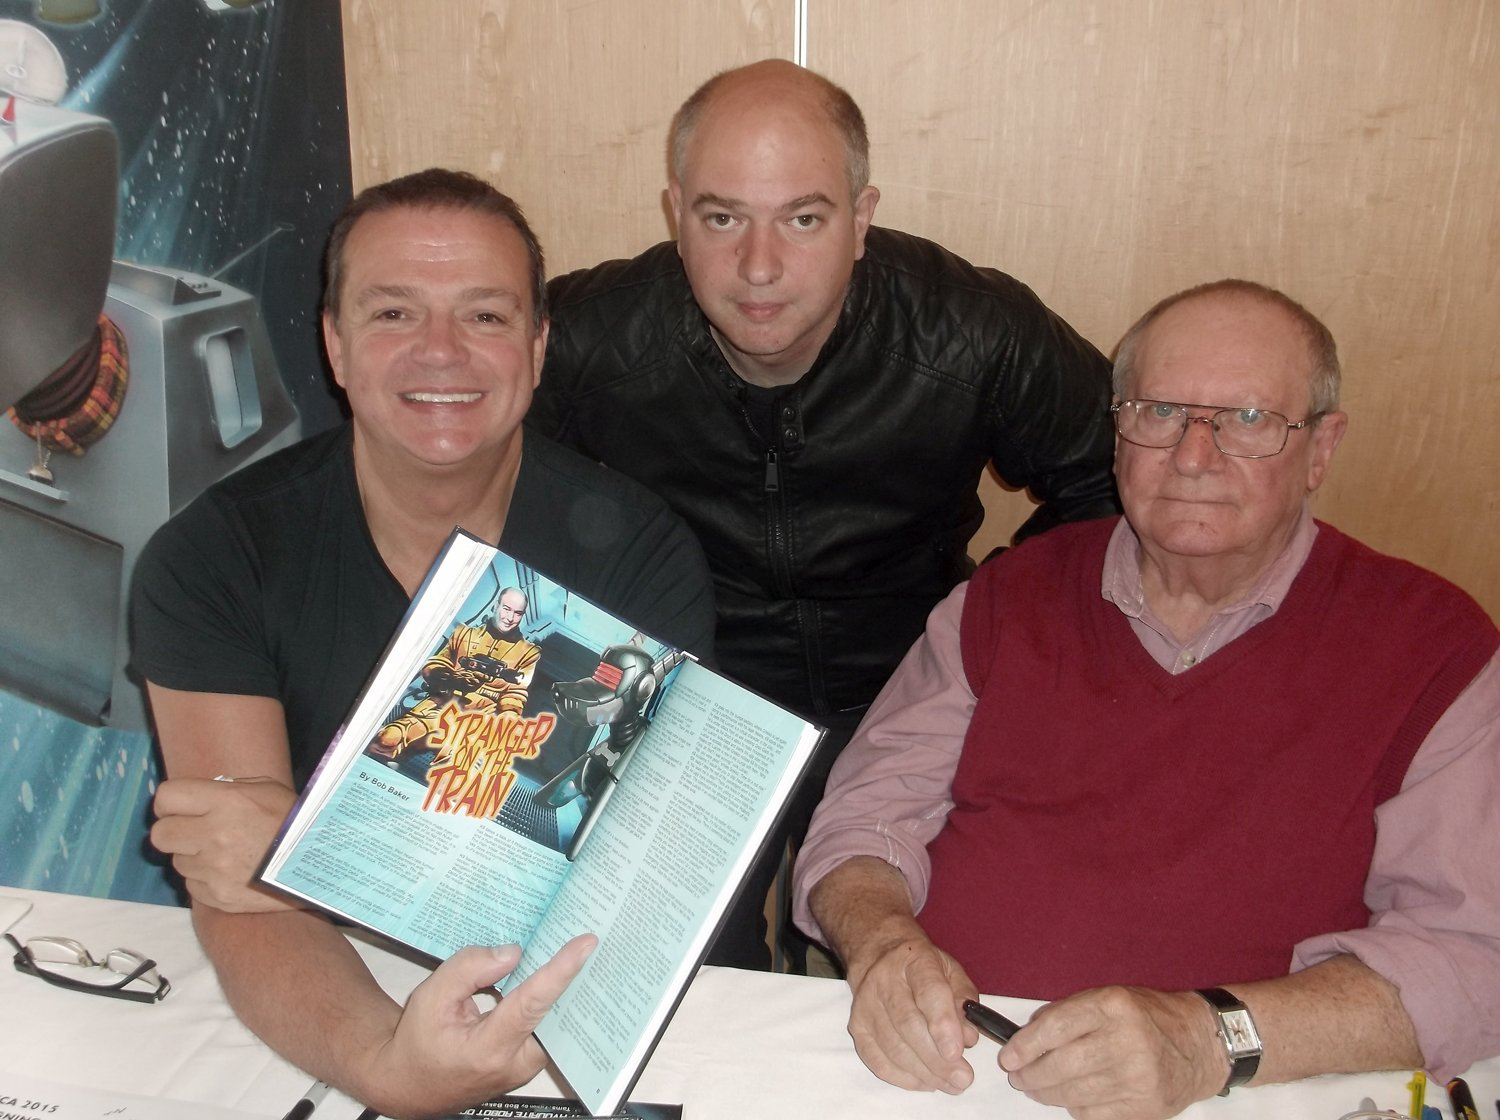 Andrew O'Day with Paul Tams and Bob Baker and a copy of The Essential Book of K9 which stars Andrew on page 86